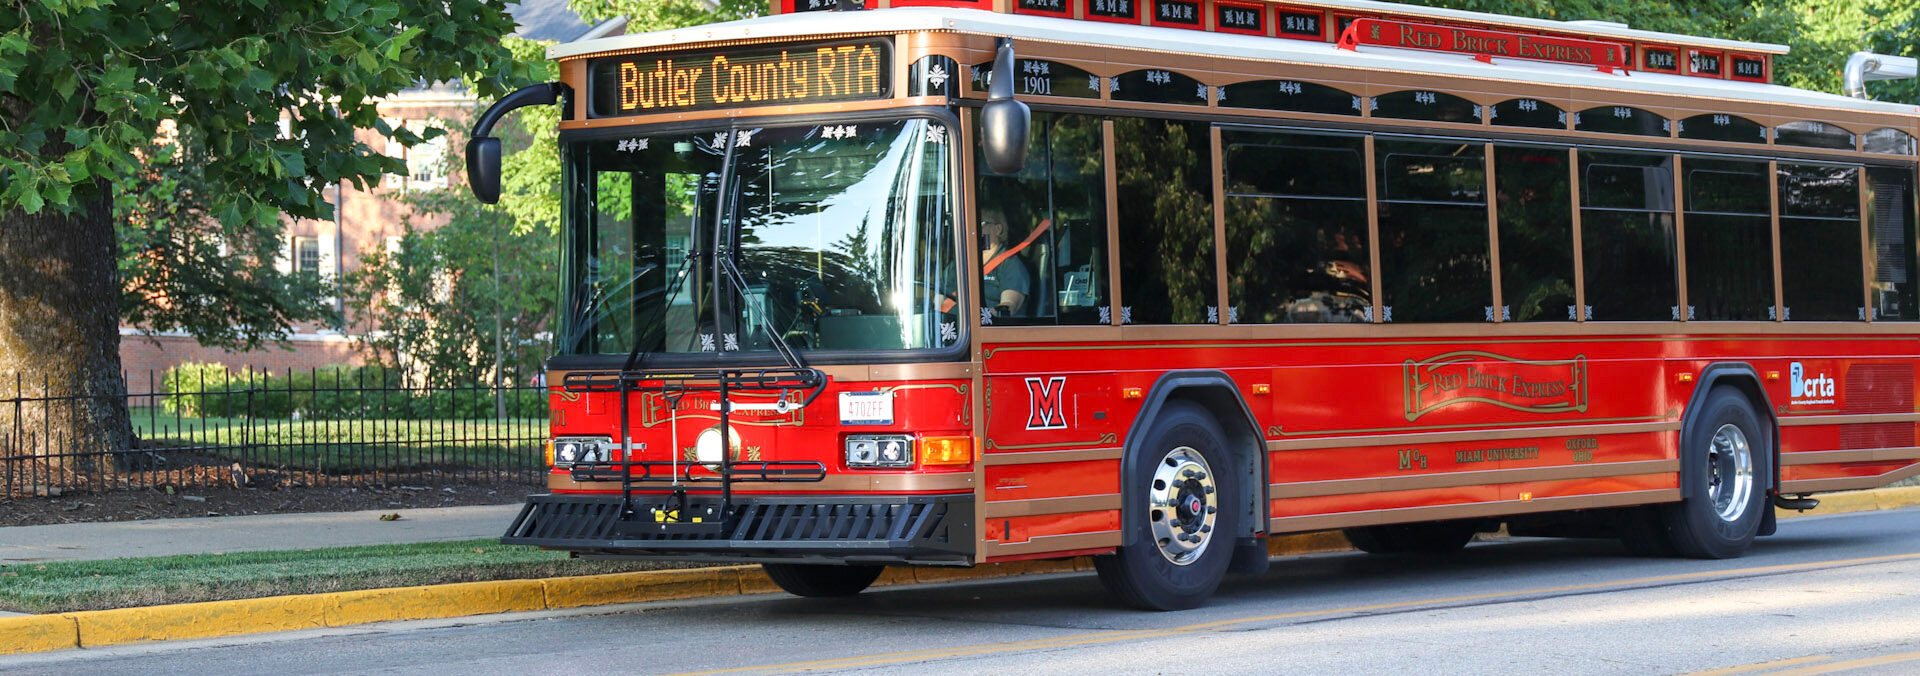 The Miami University Trolley at a bus stop